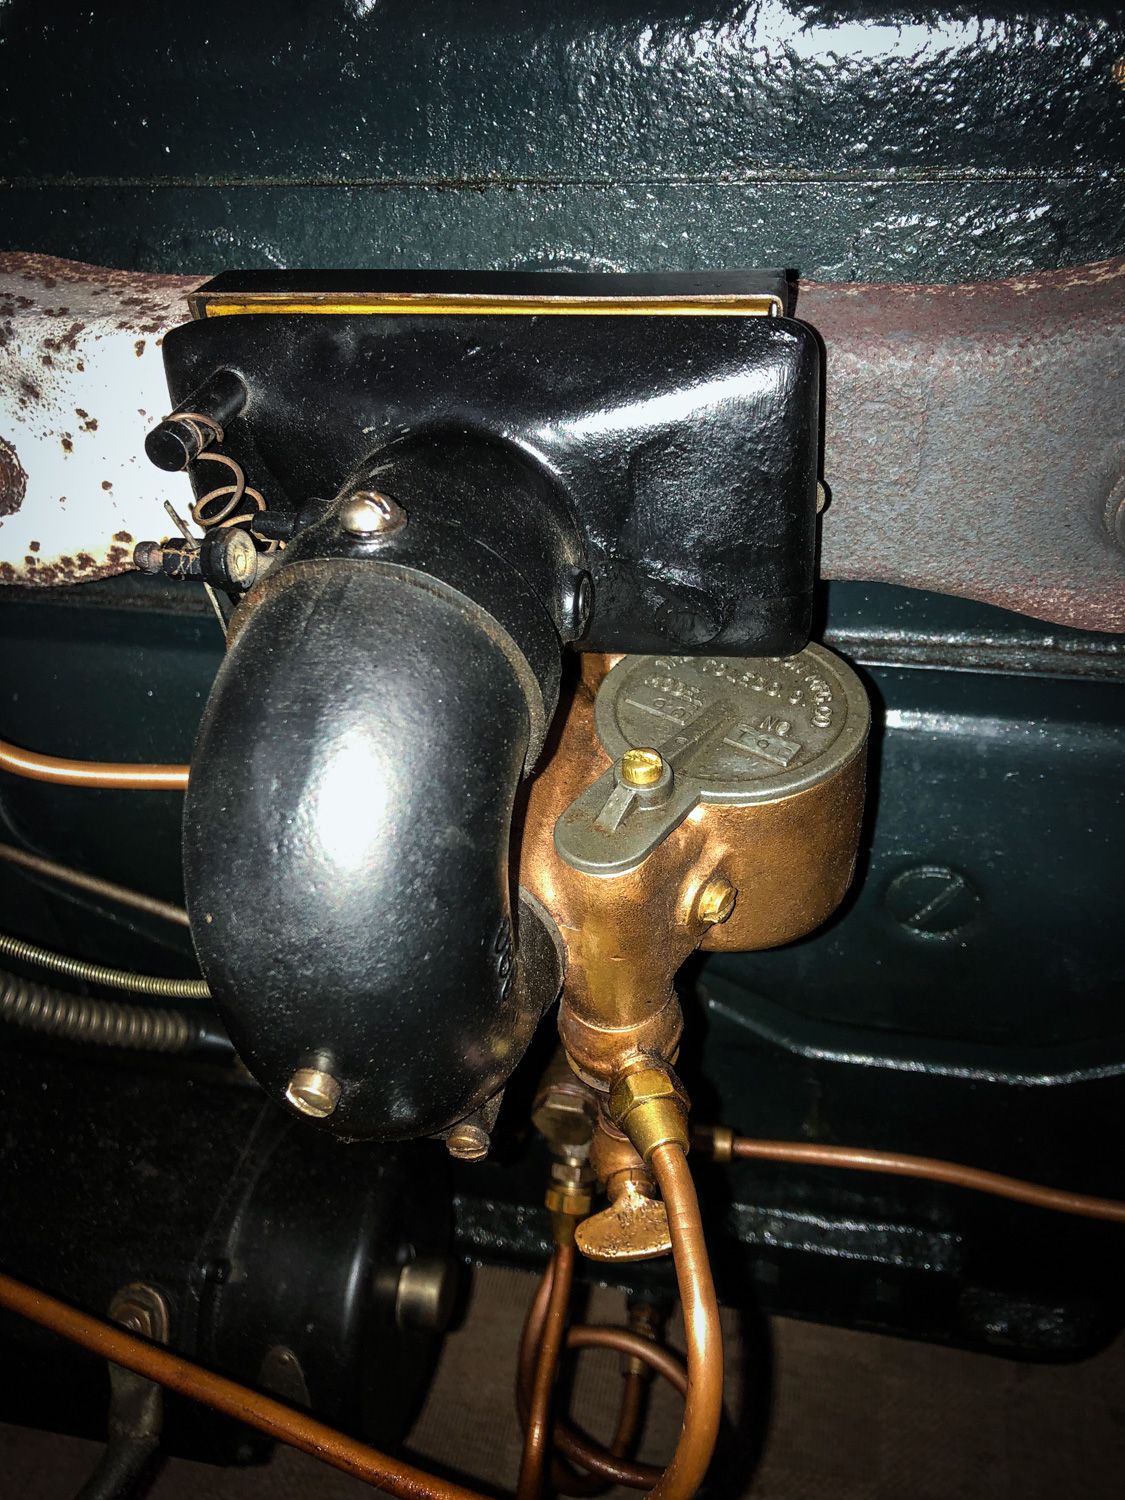 1917 Willys-Overland intake